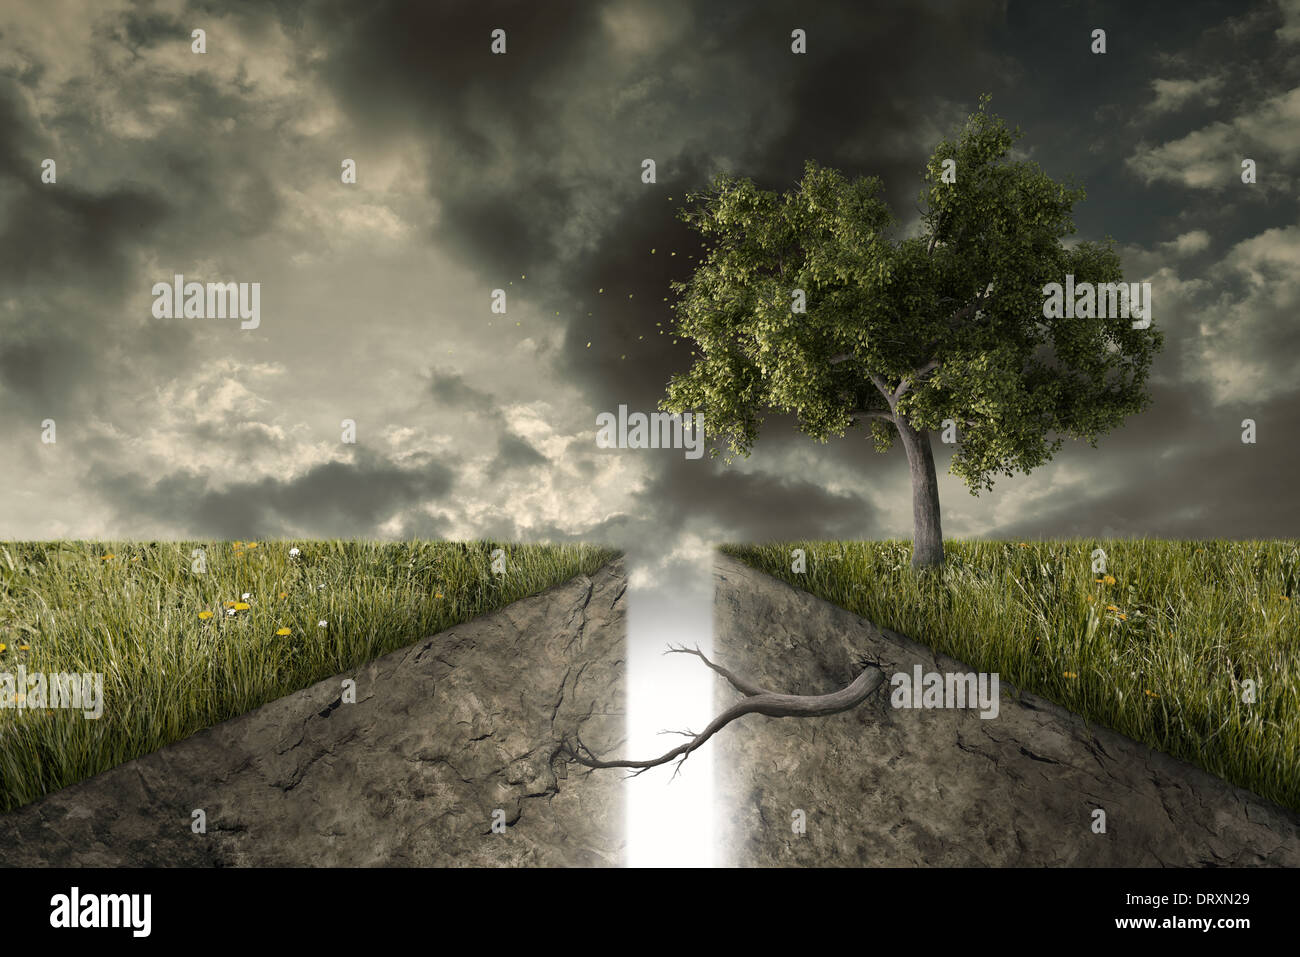 A deep track divides the earth, a tree reunites them - Stock Image